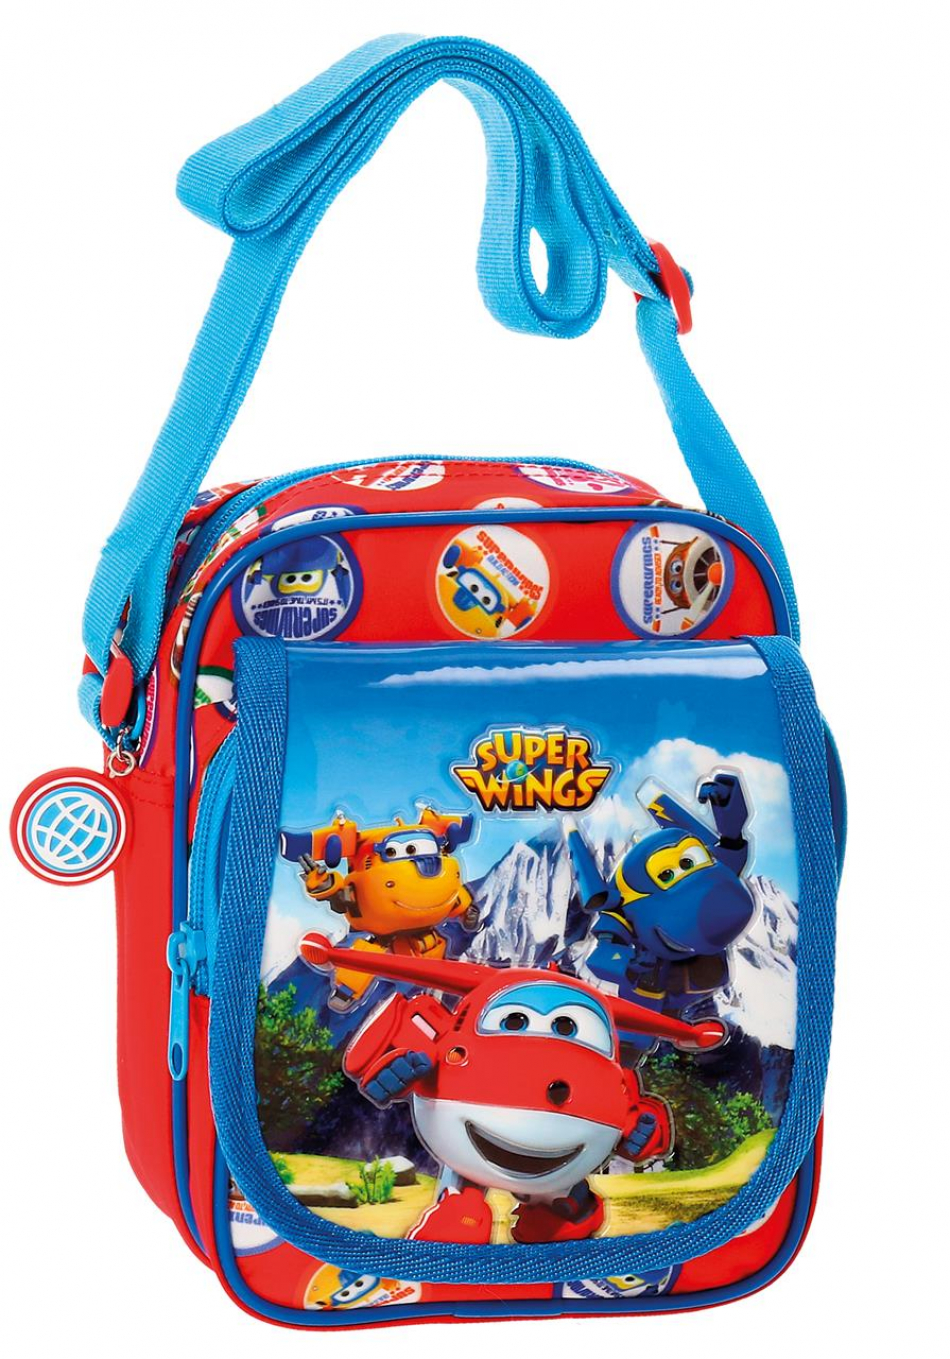 Bandolera Super Wings Mountain